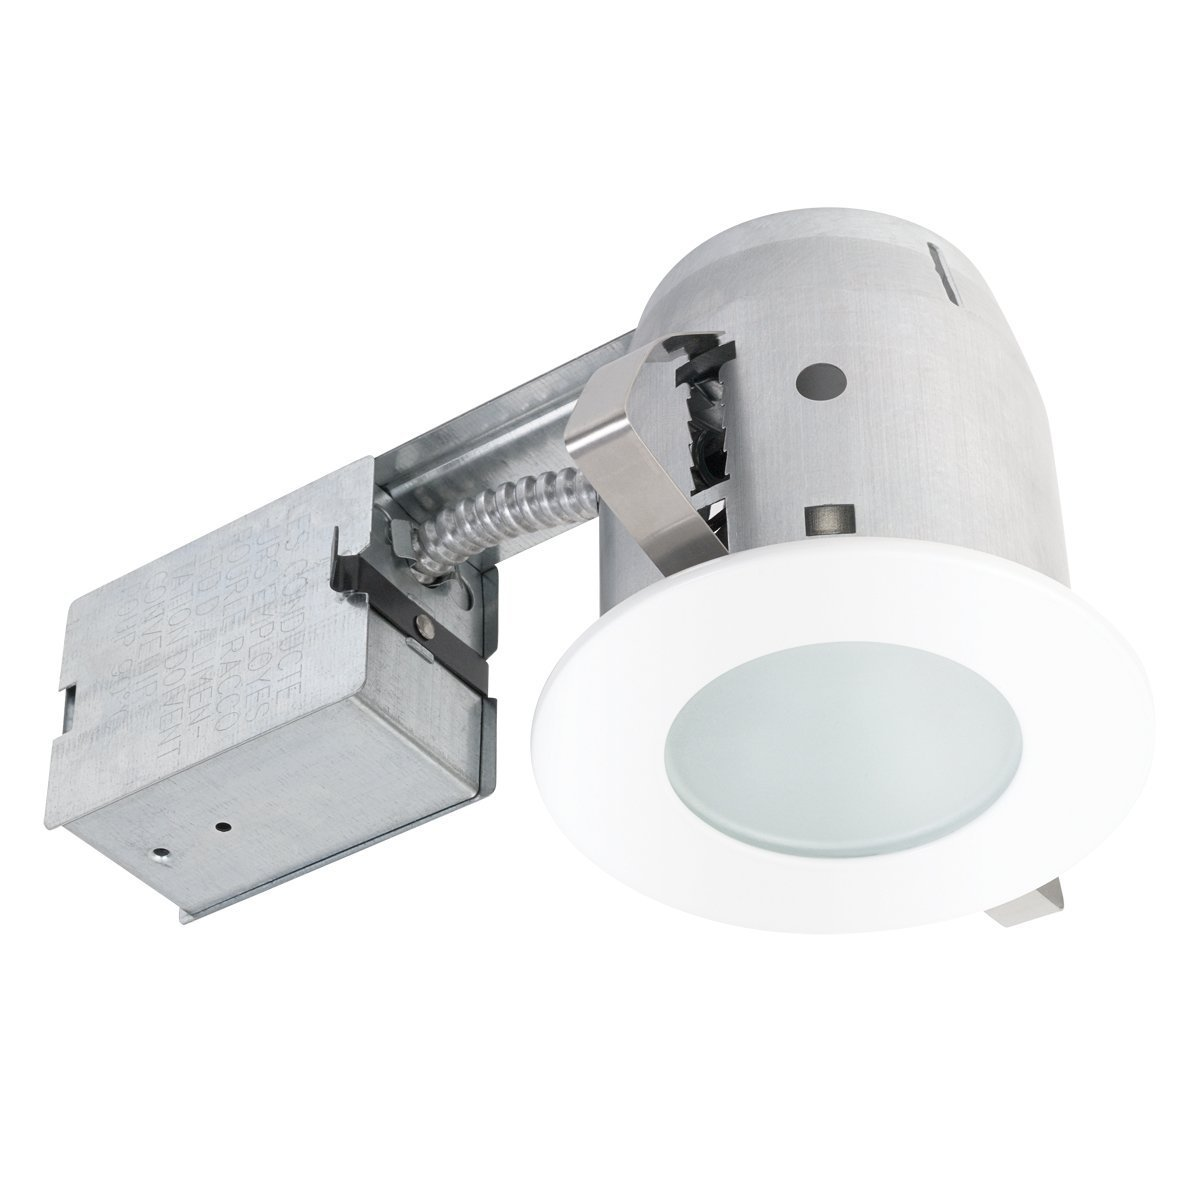 Amazon 4 bathroom shower dimmable downlight recessed lighting amazon 4 bathroom shower dimmable downlight recessed lighting kit round tempered frosted glass easy install push n click clips globe electric aloadofball Image collections